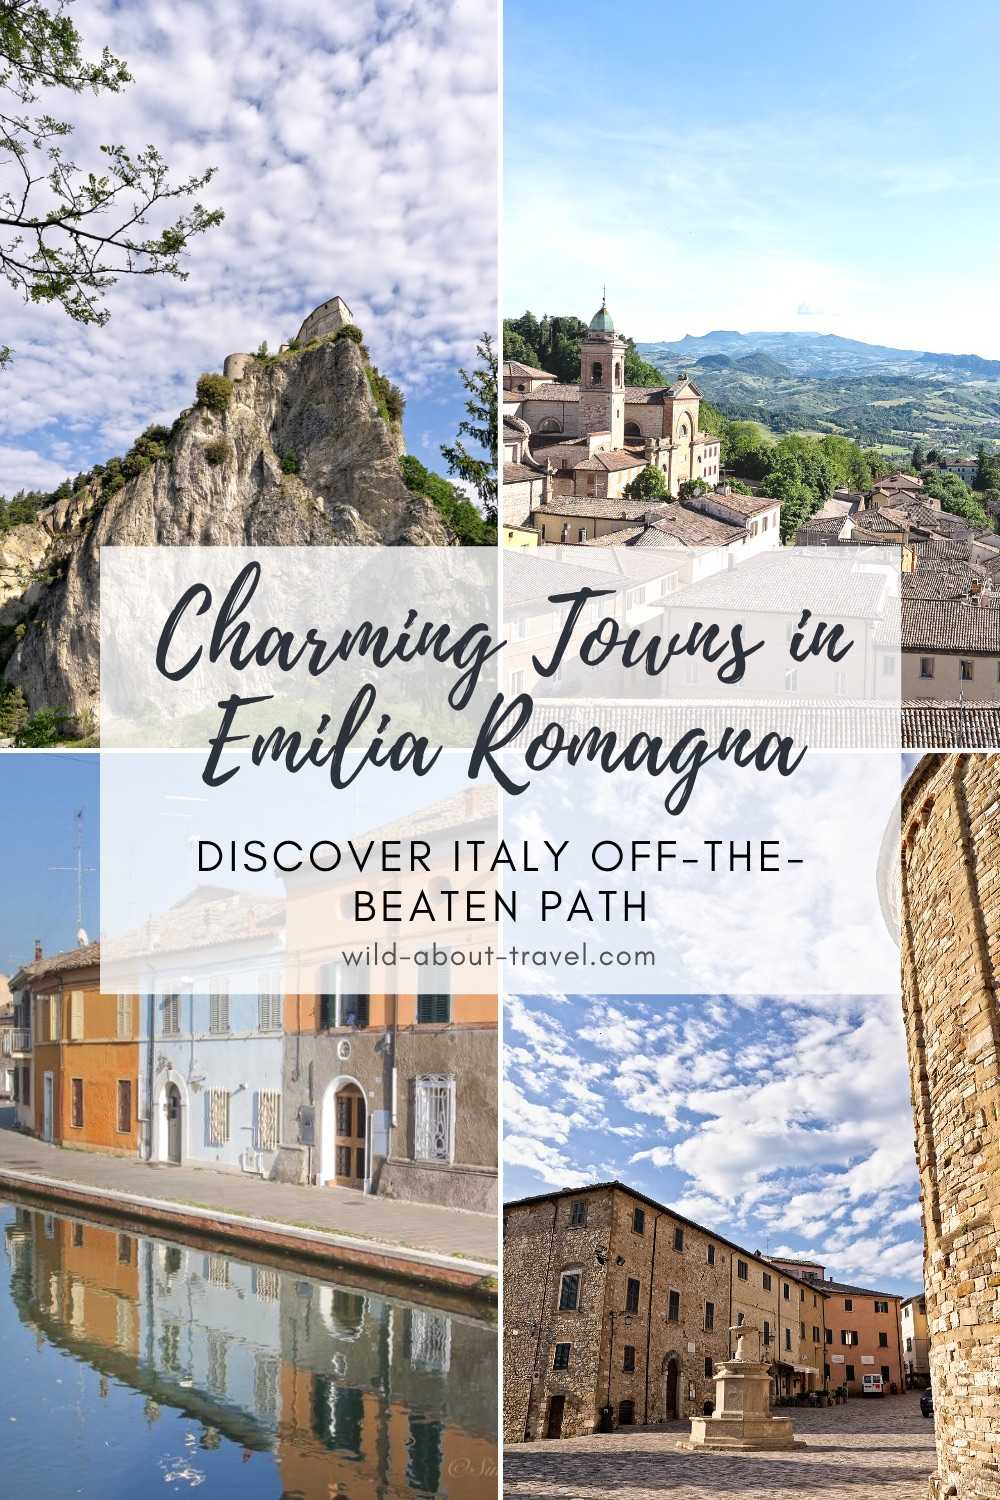 Charming Small Towns in Emilia Romagna